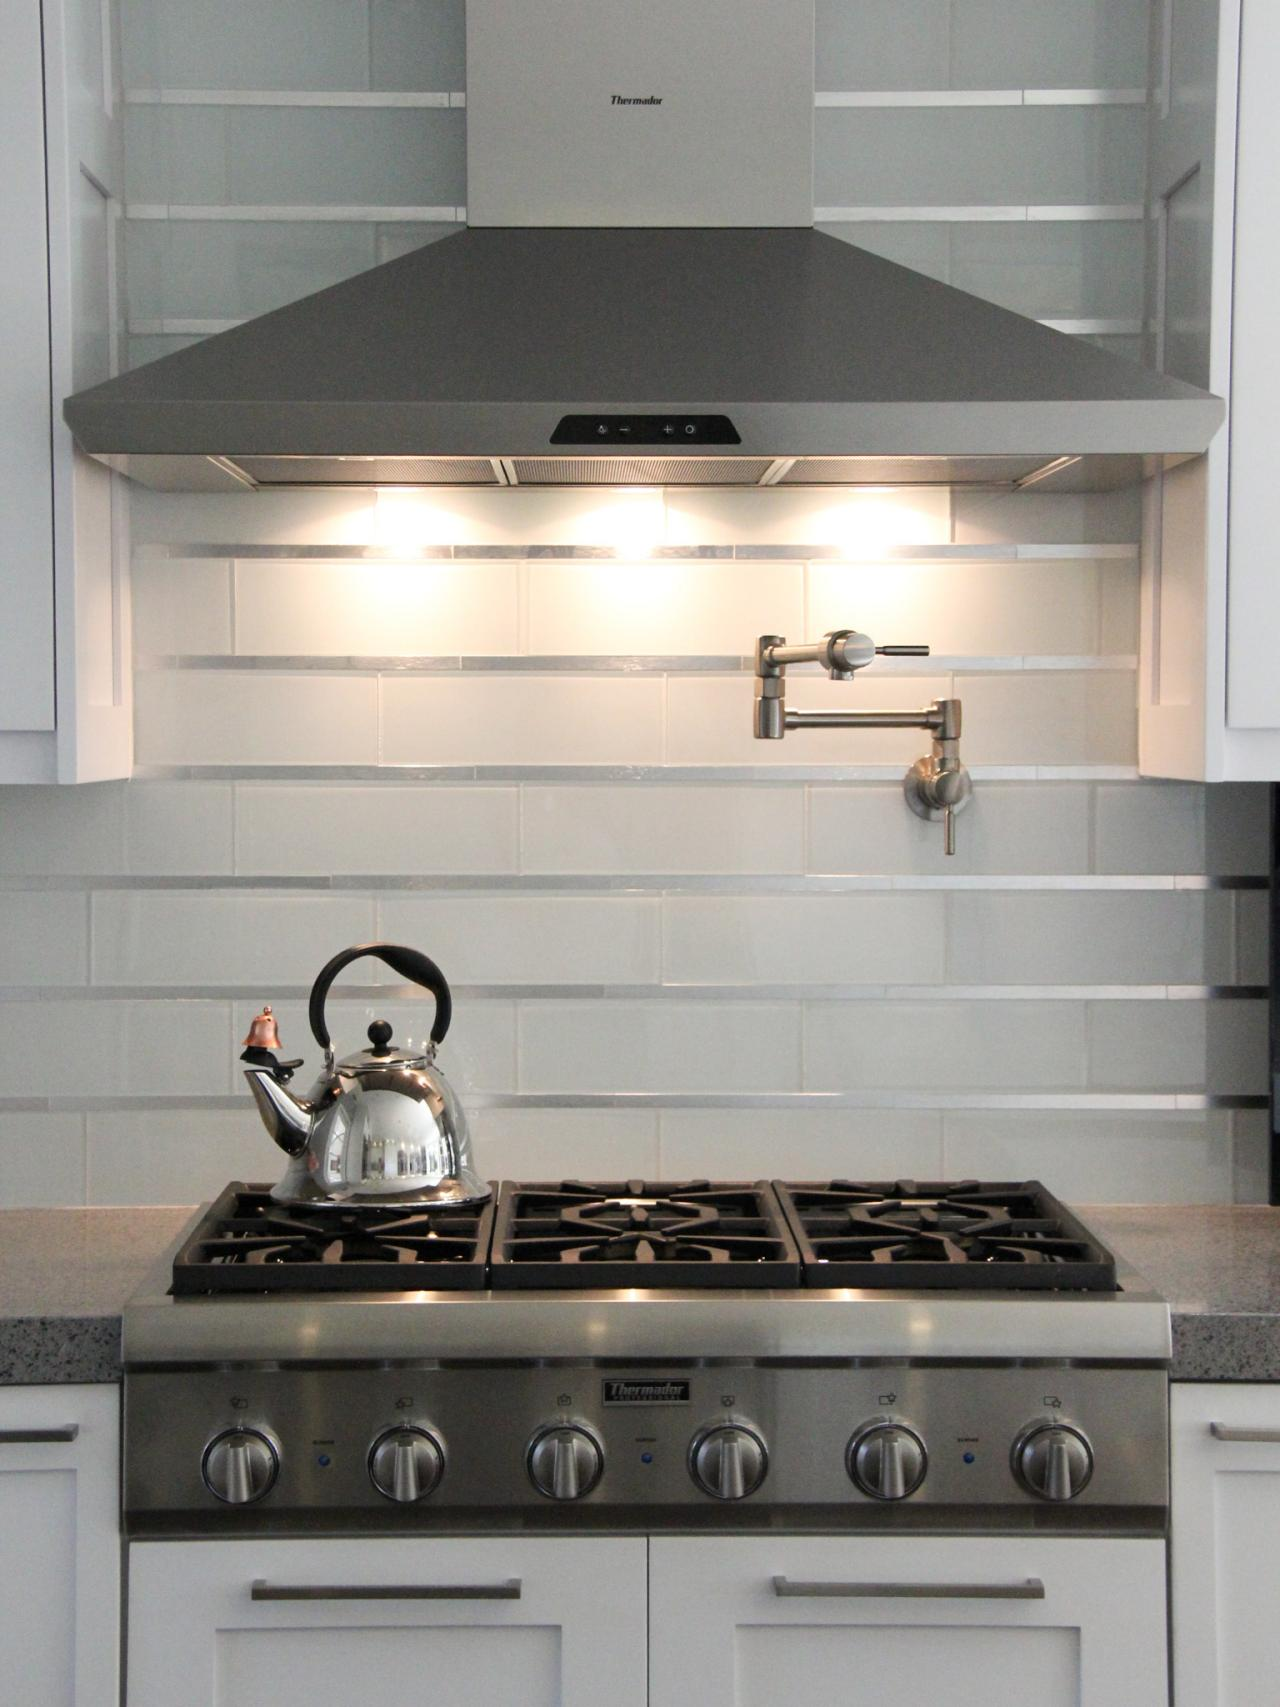 stainless steel tile backsplash contemporary backsplash contemporary kitchen backsplash ideas hgtv pictures kitchen ideas